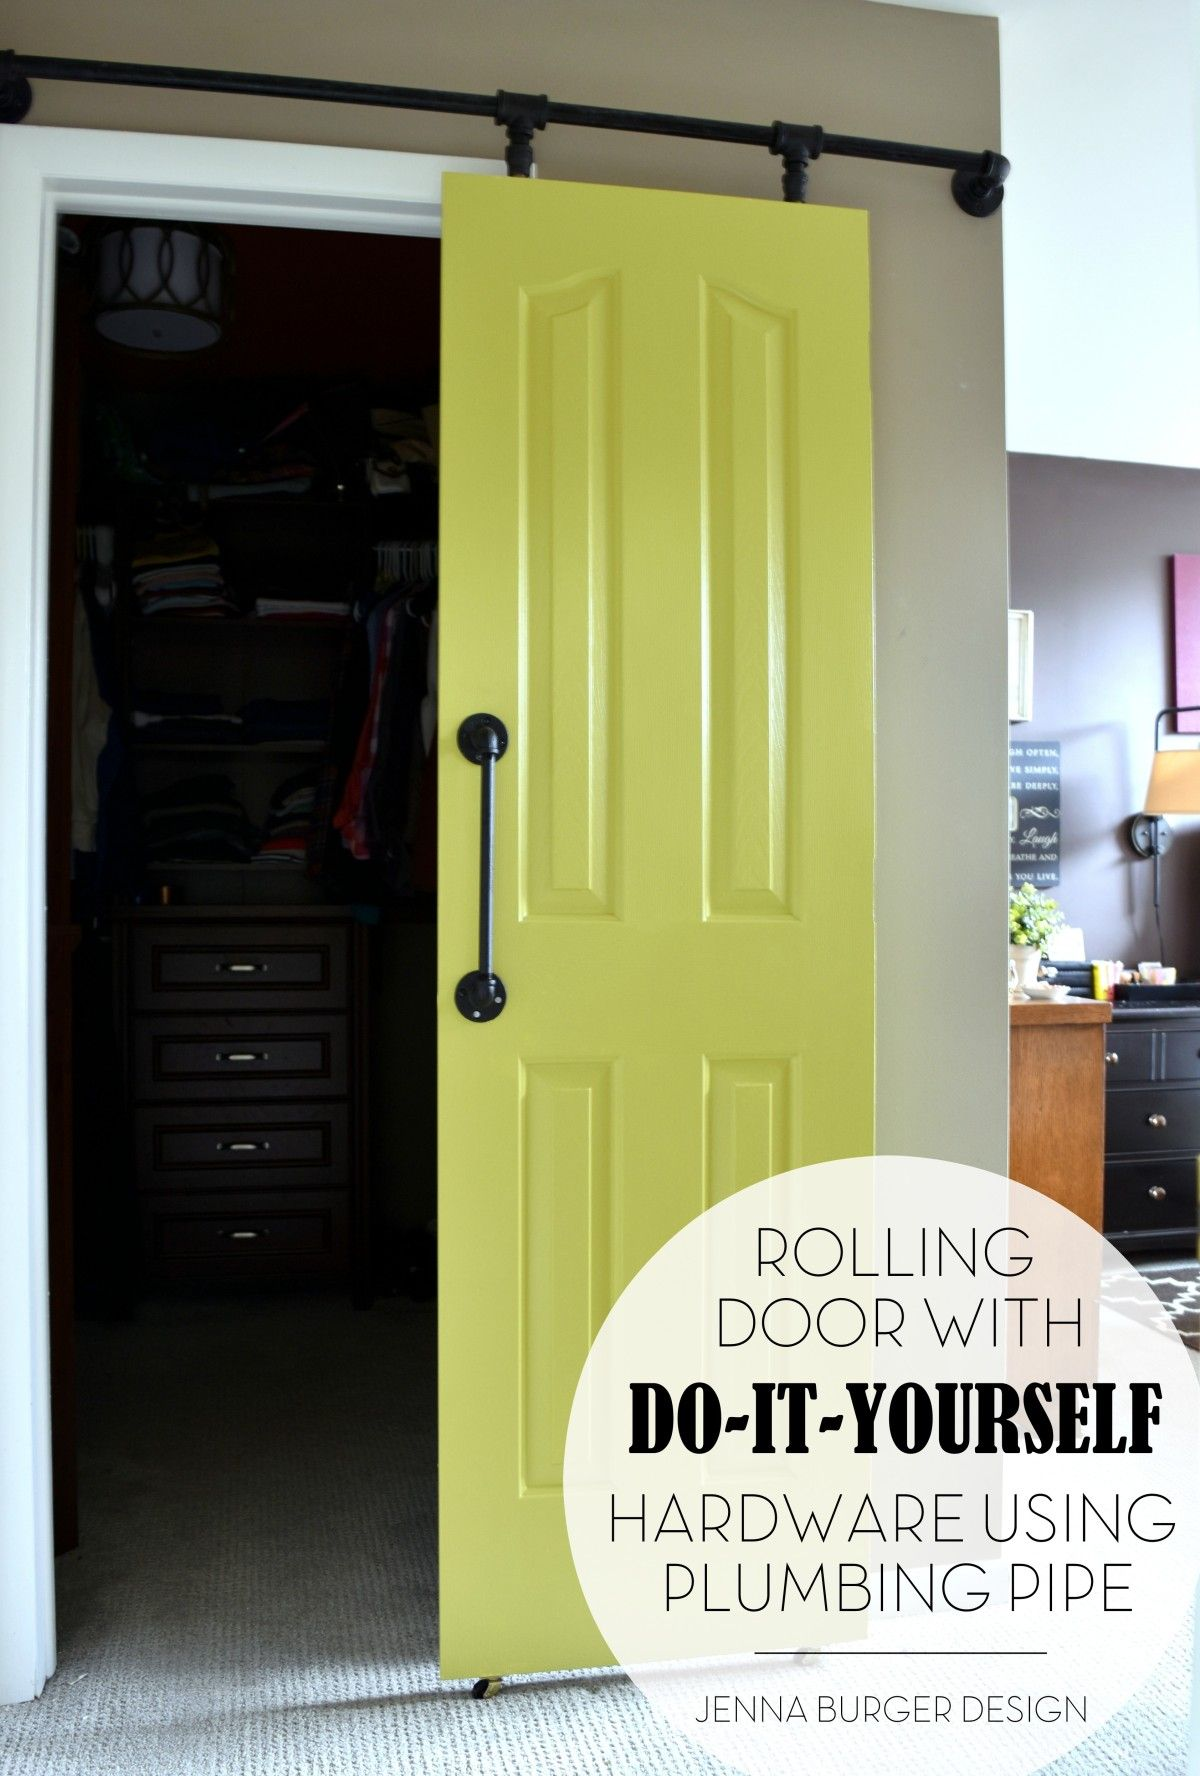 DIY: Rolling door hardware using plumbing pipe. Get the